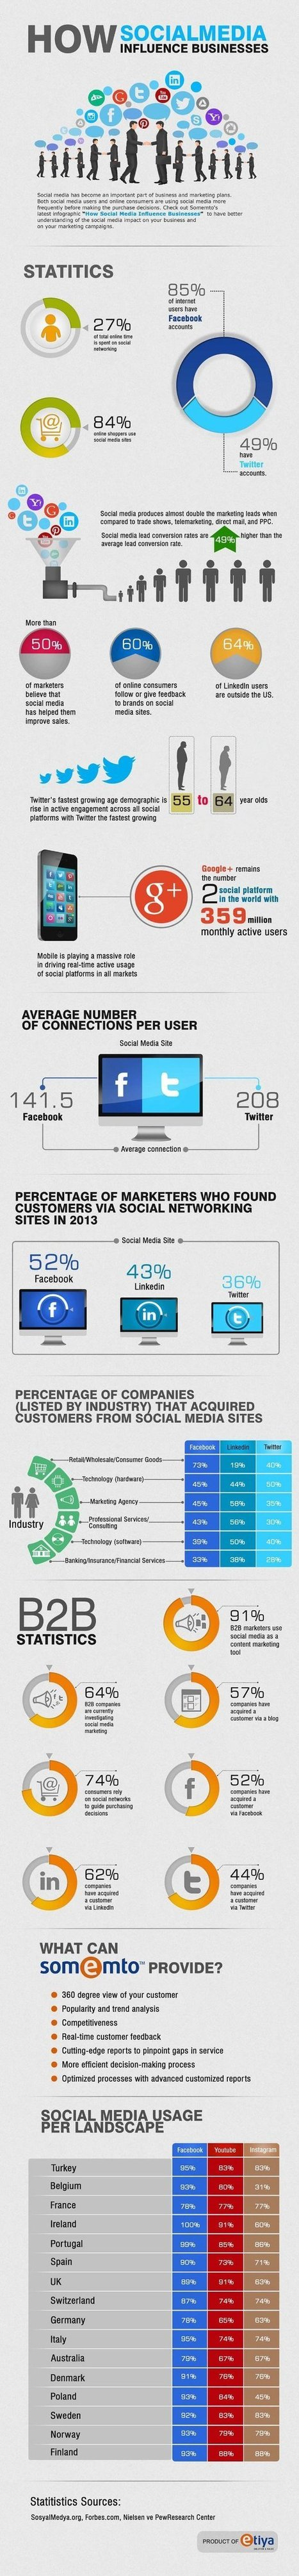 How Does Social Media Leave A Footprint On Your Business? (Infographic) - Business 2 Community | Everything Marketing You Can Think Of | Scoop.it